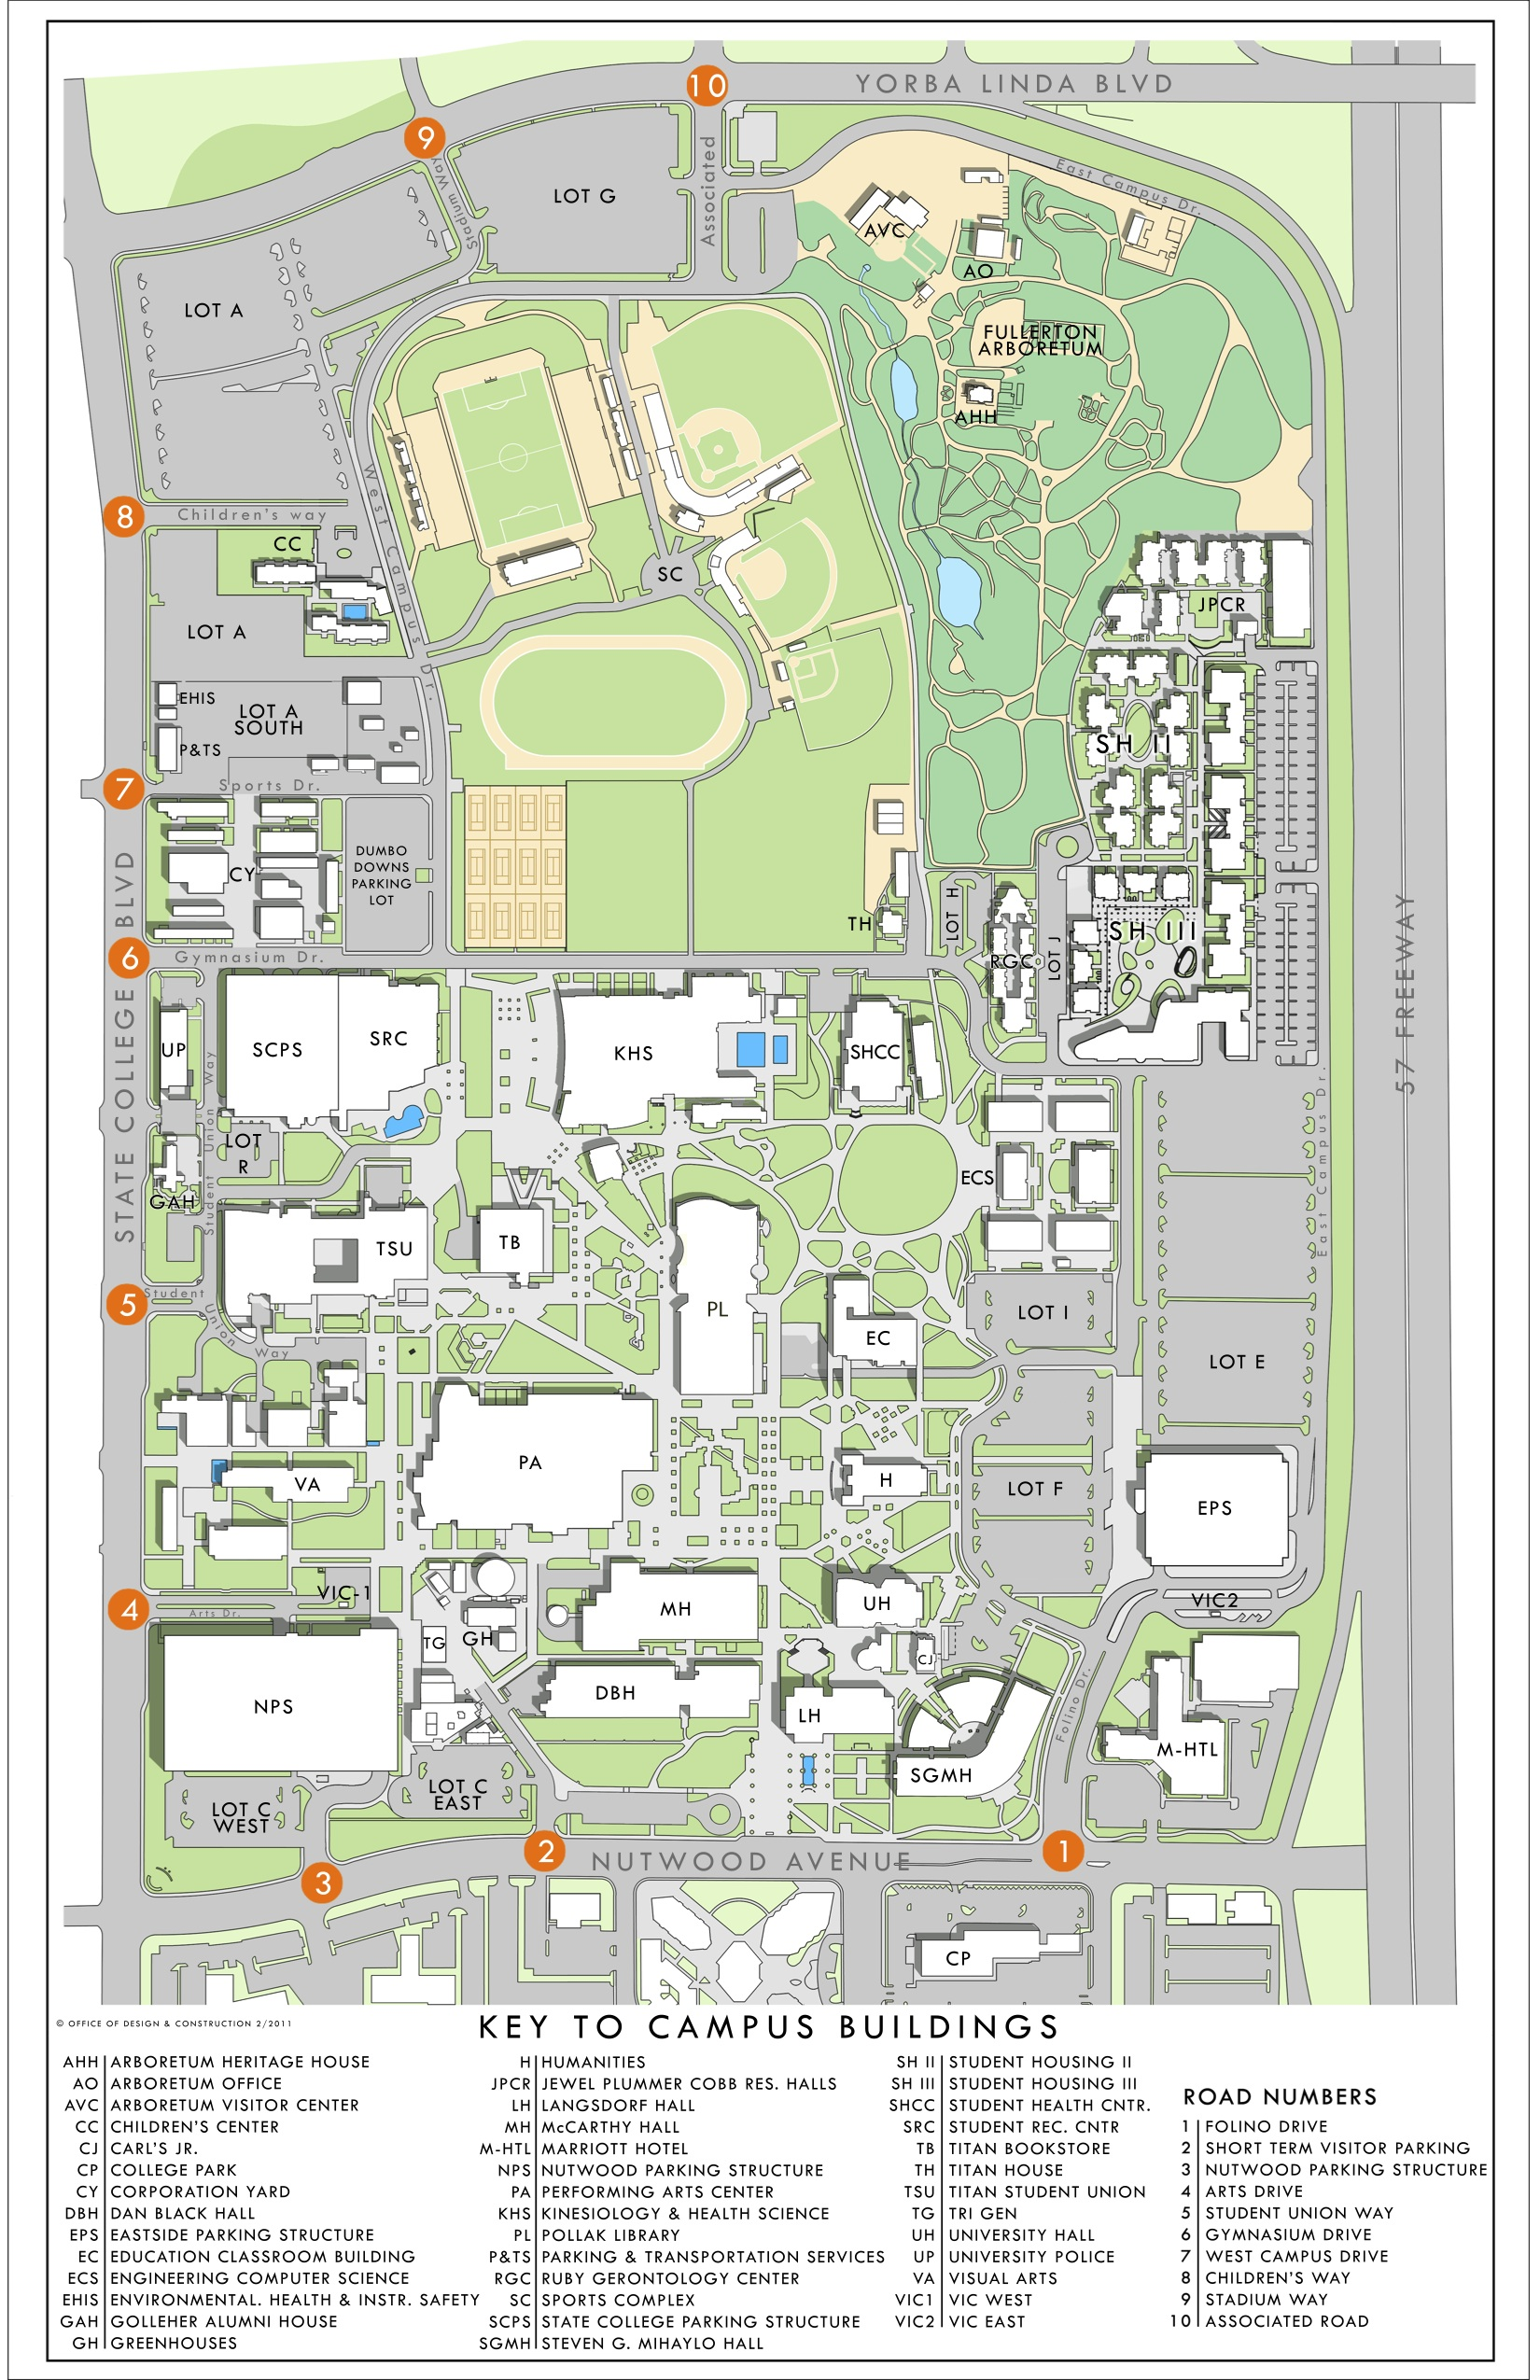 CAMPUS MAP street numbers.jpg